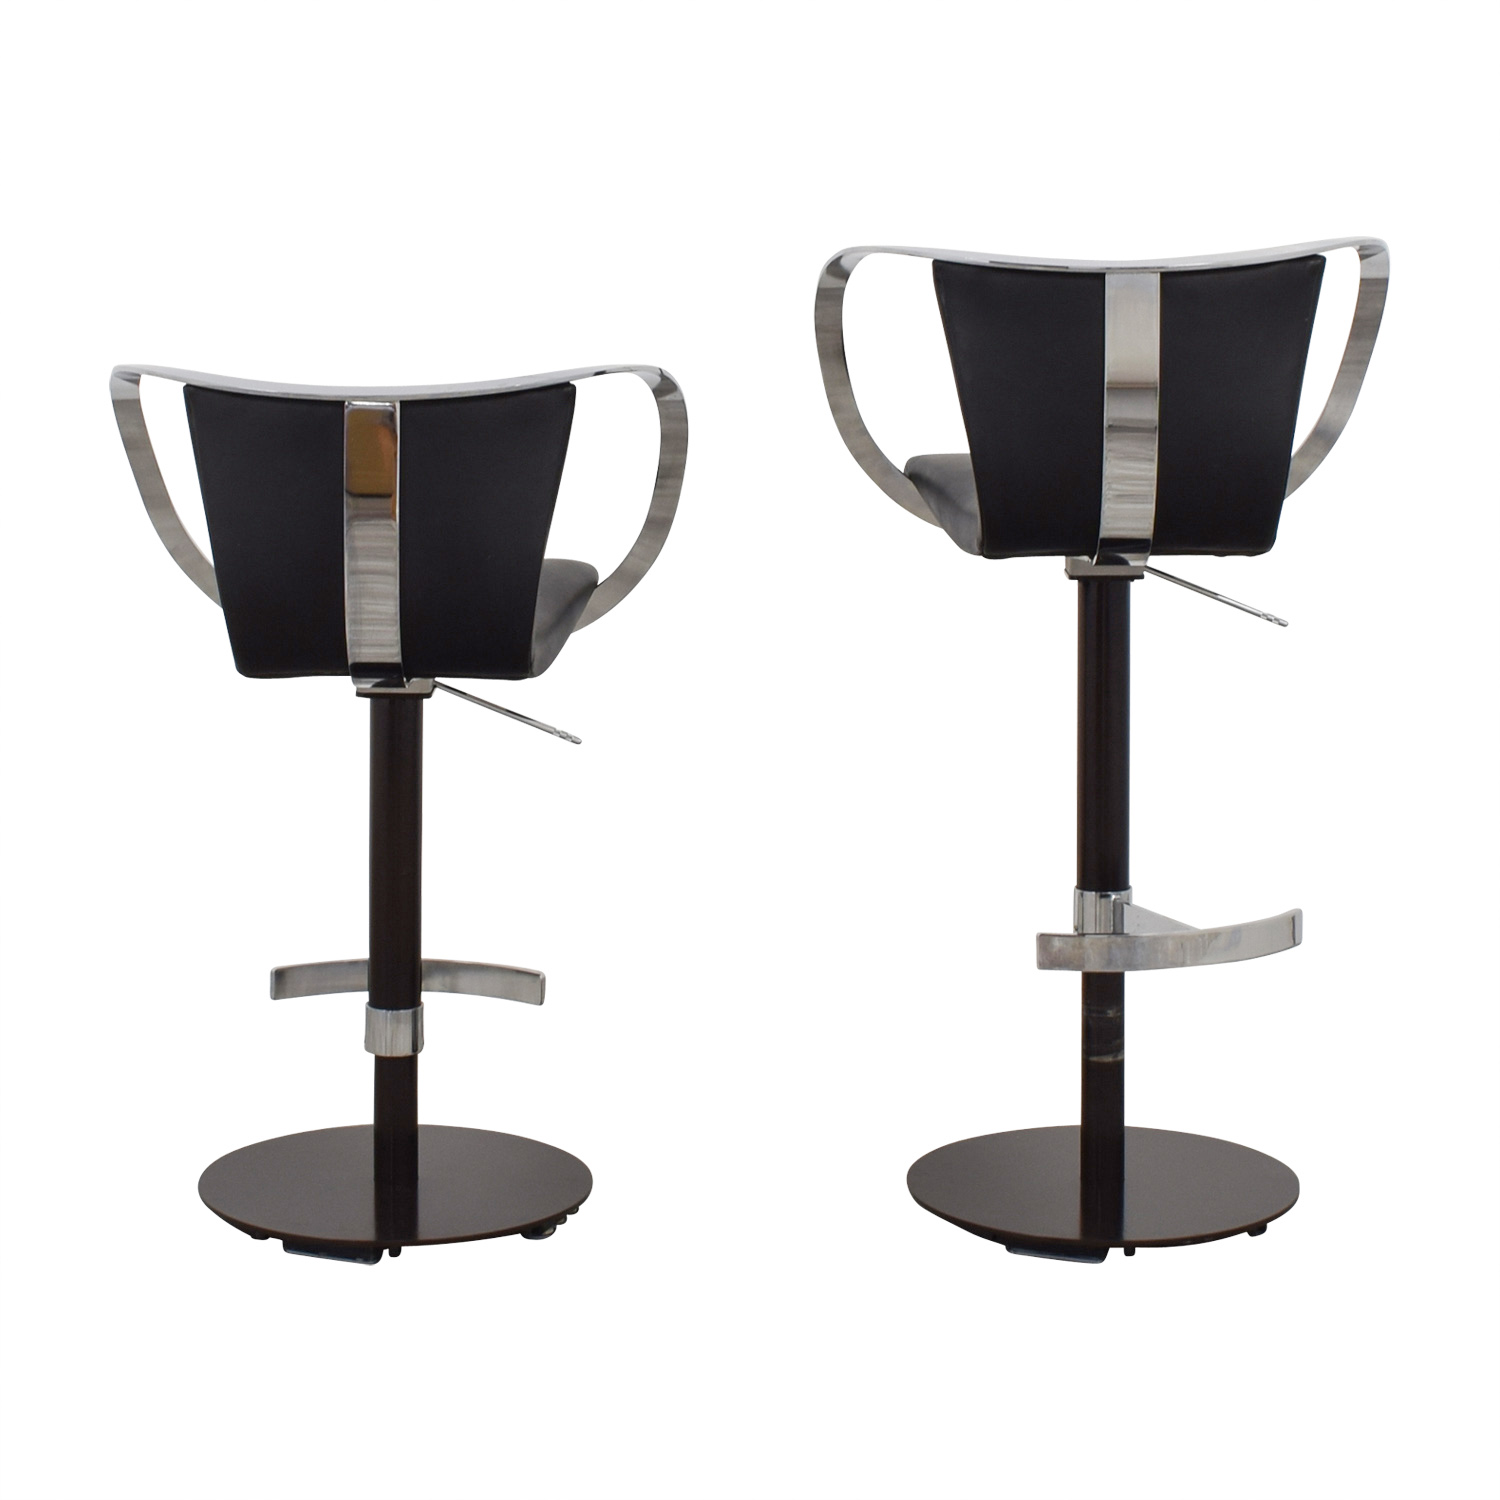 Crate & Barrel Black Leather and Chrome Adjustable Kitchen Stools / Stools